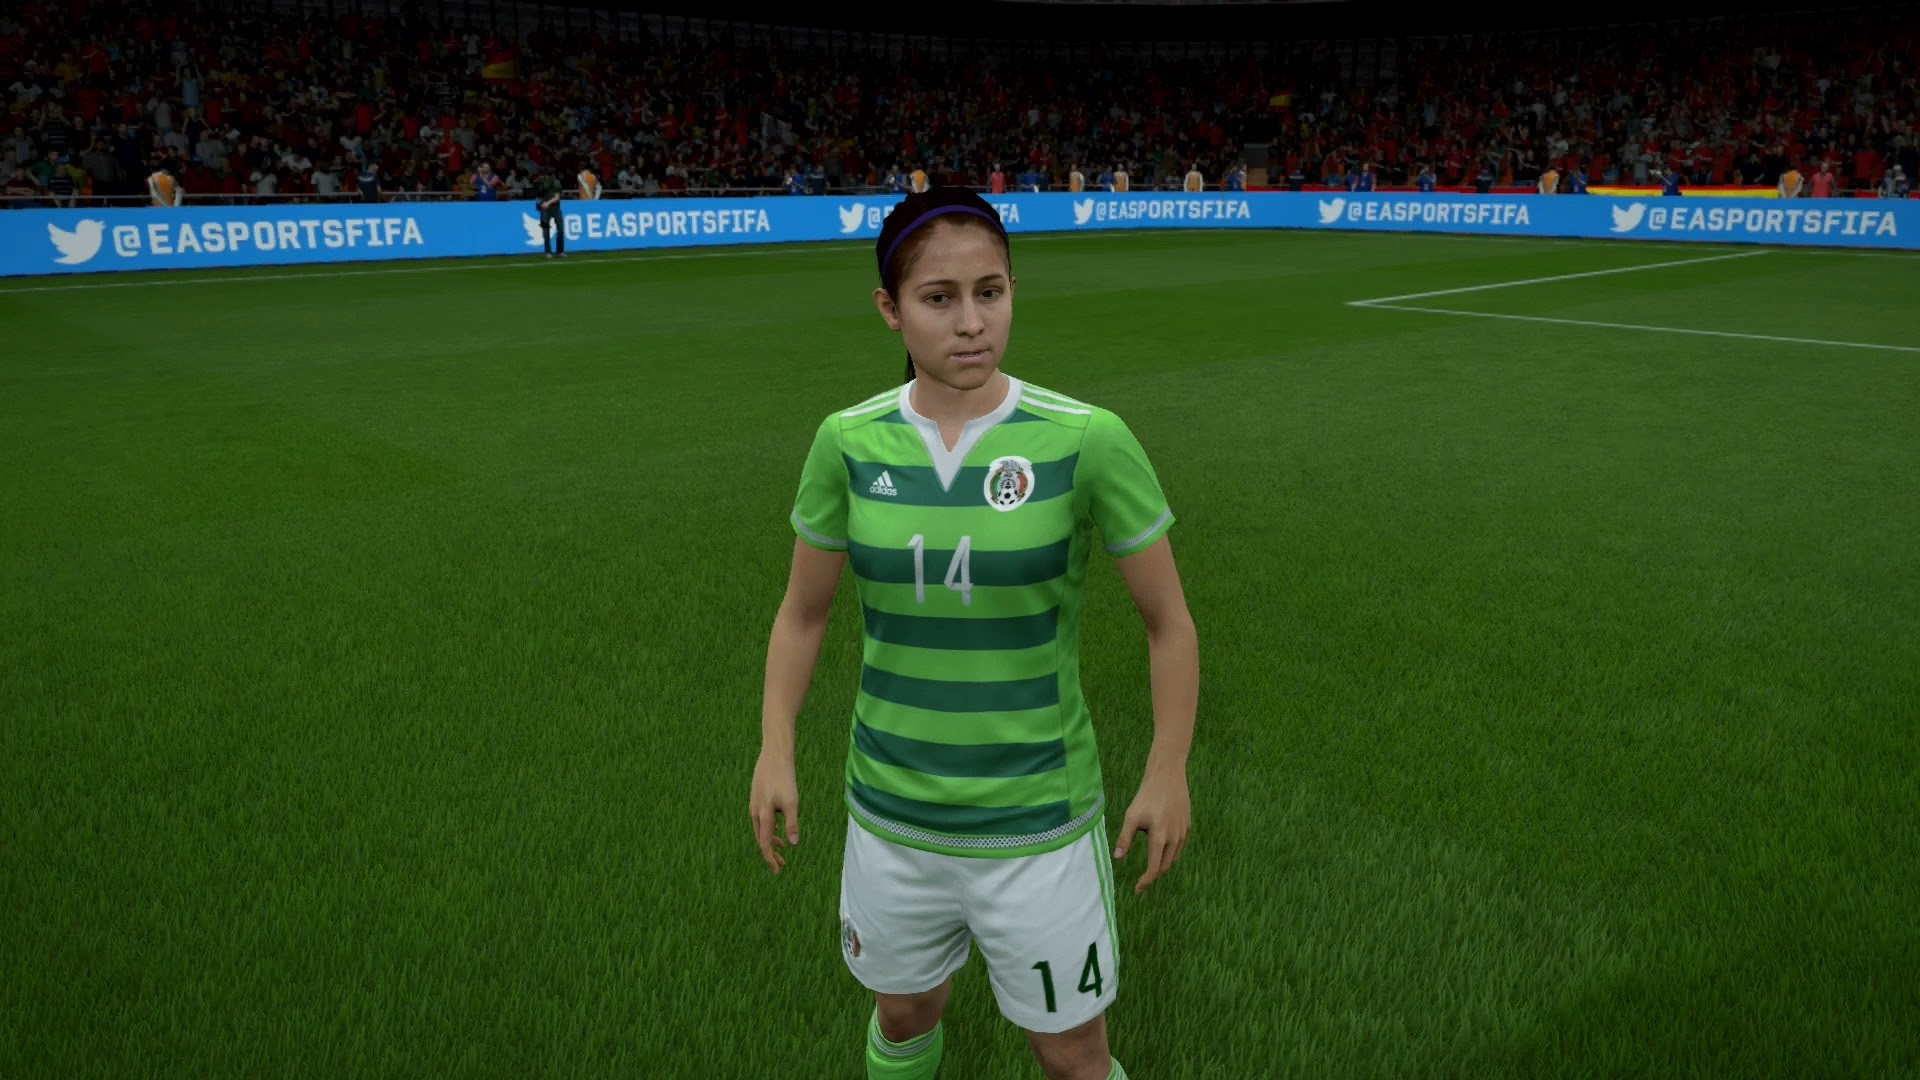 FIFA 16 – Mexico Women's National Team Player Faces